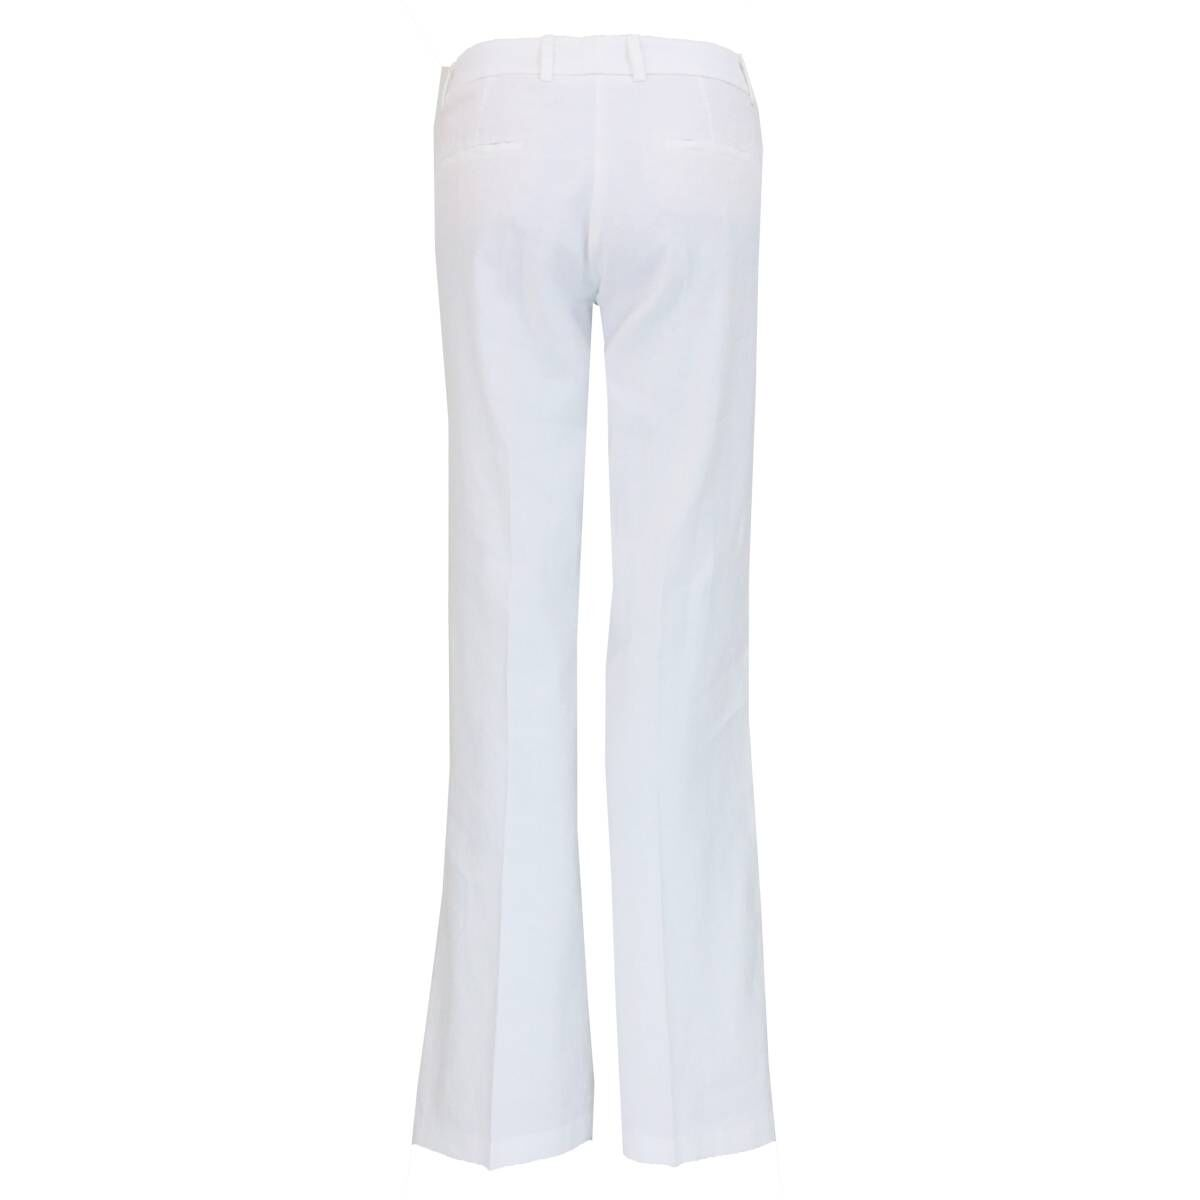 Cambio trousers MALICE 8003 0317-00 white at Penninkhoffashion.com